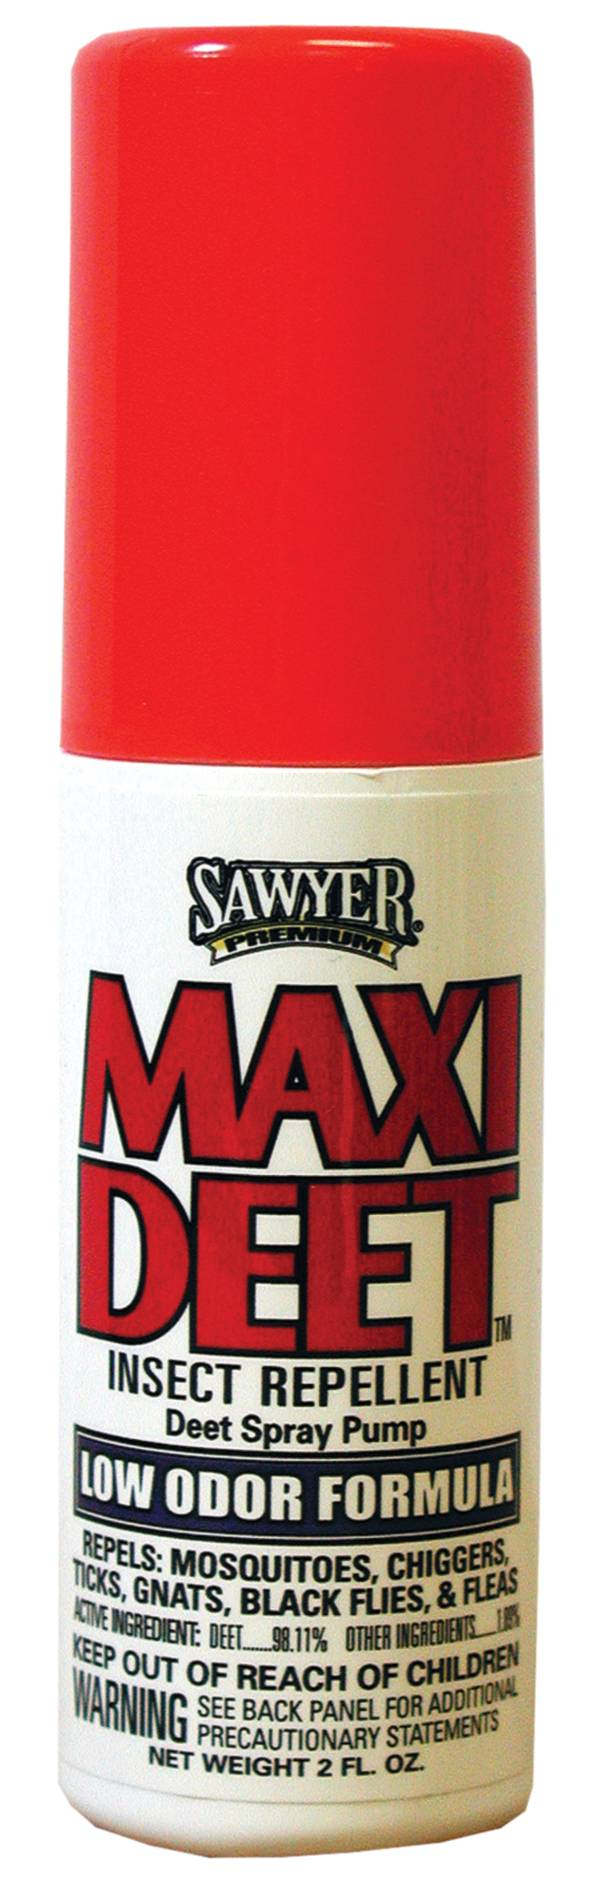 Sawyer Premium MAXI-DEET Insect Repellent product image